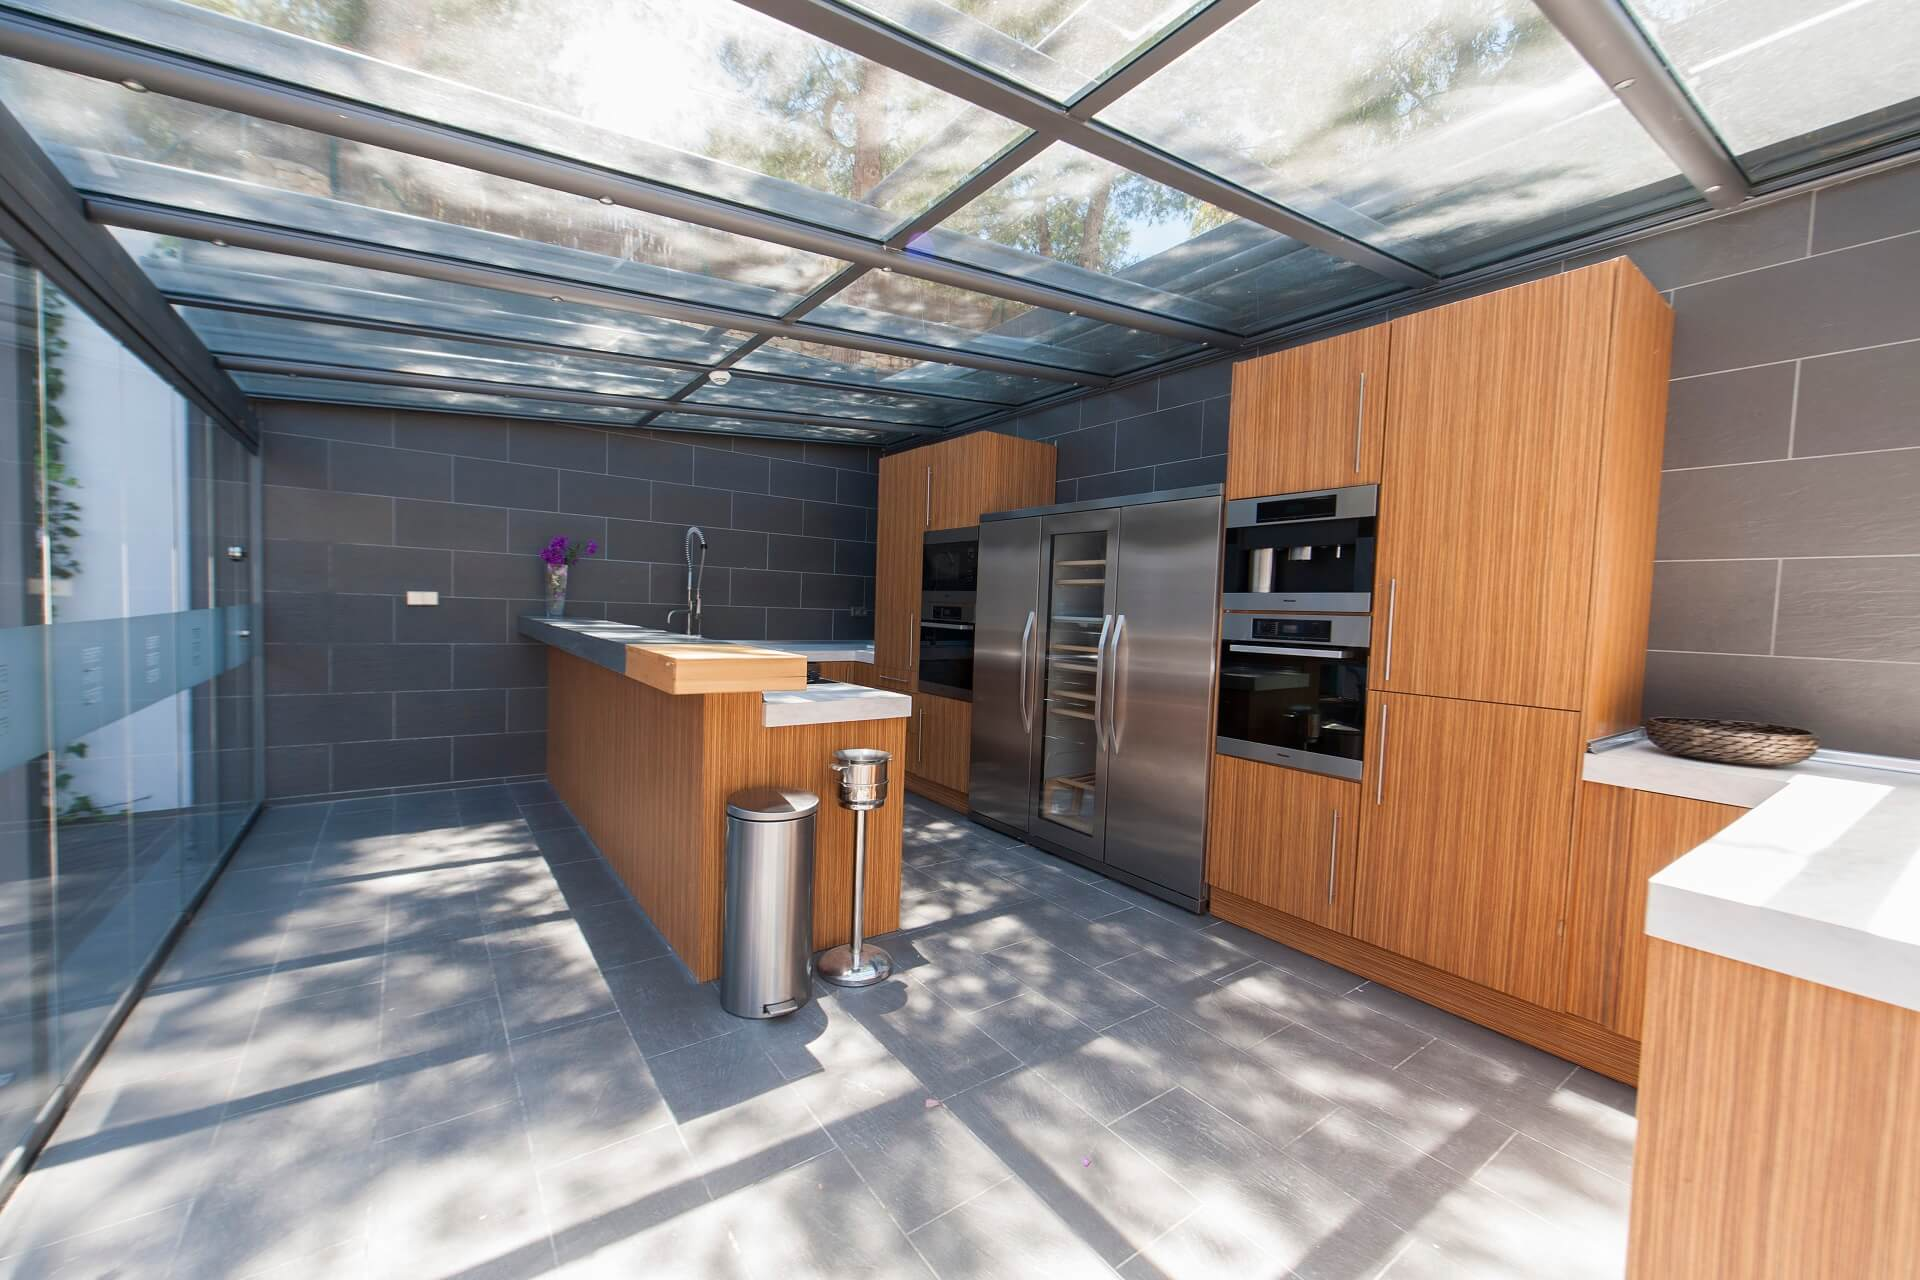 Casa India Ibiza - Outdoor kitchen with MIELE electrical devices